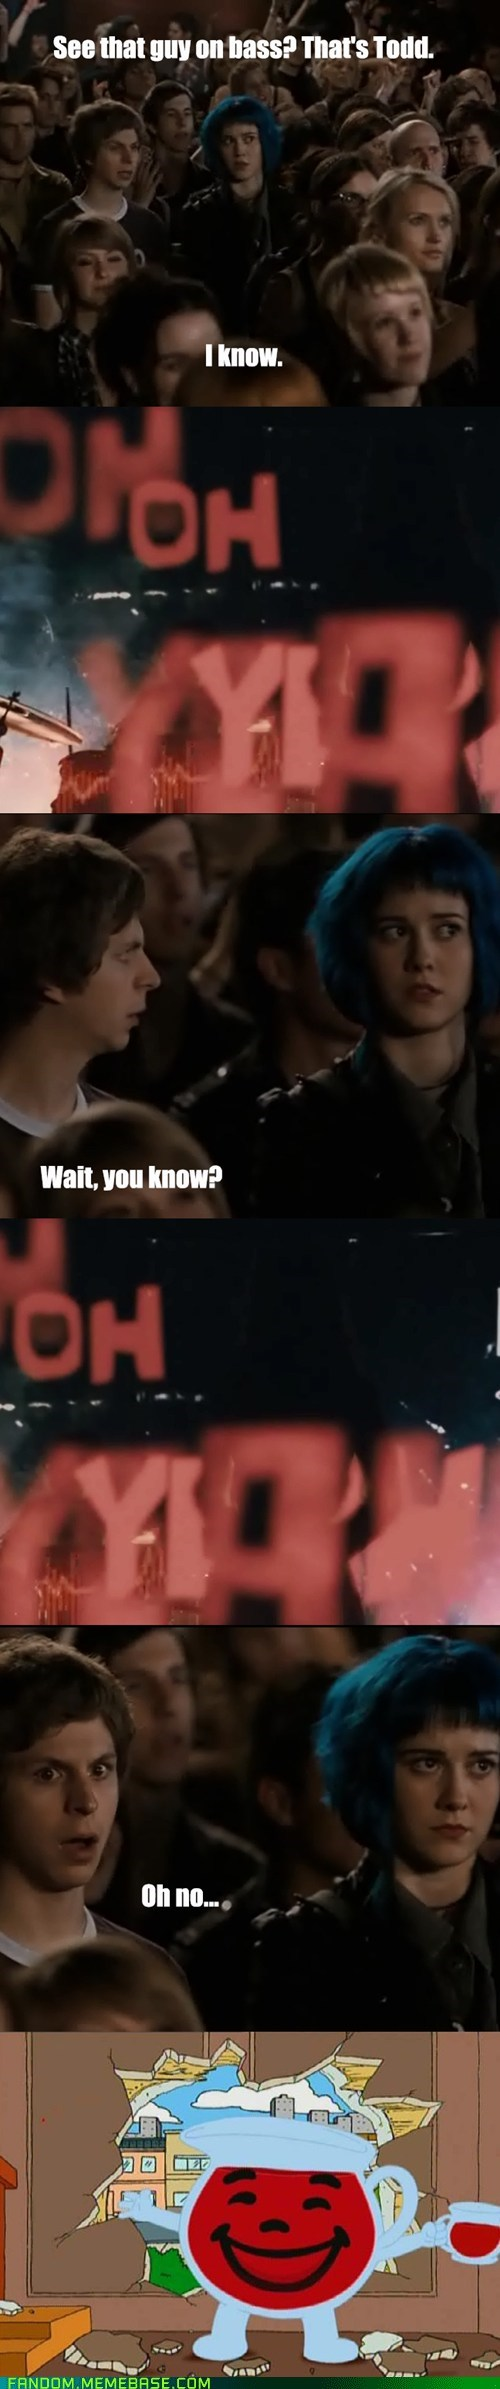 scott pilgrim kool aid movies - 6910803456